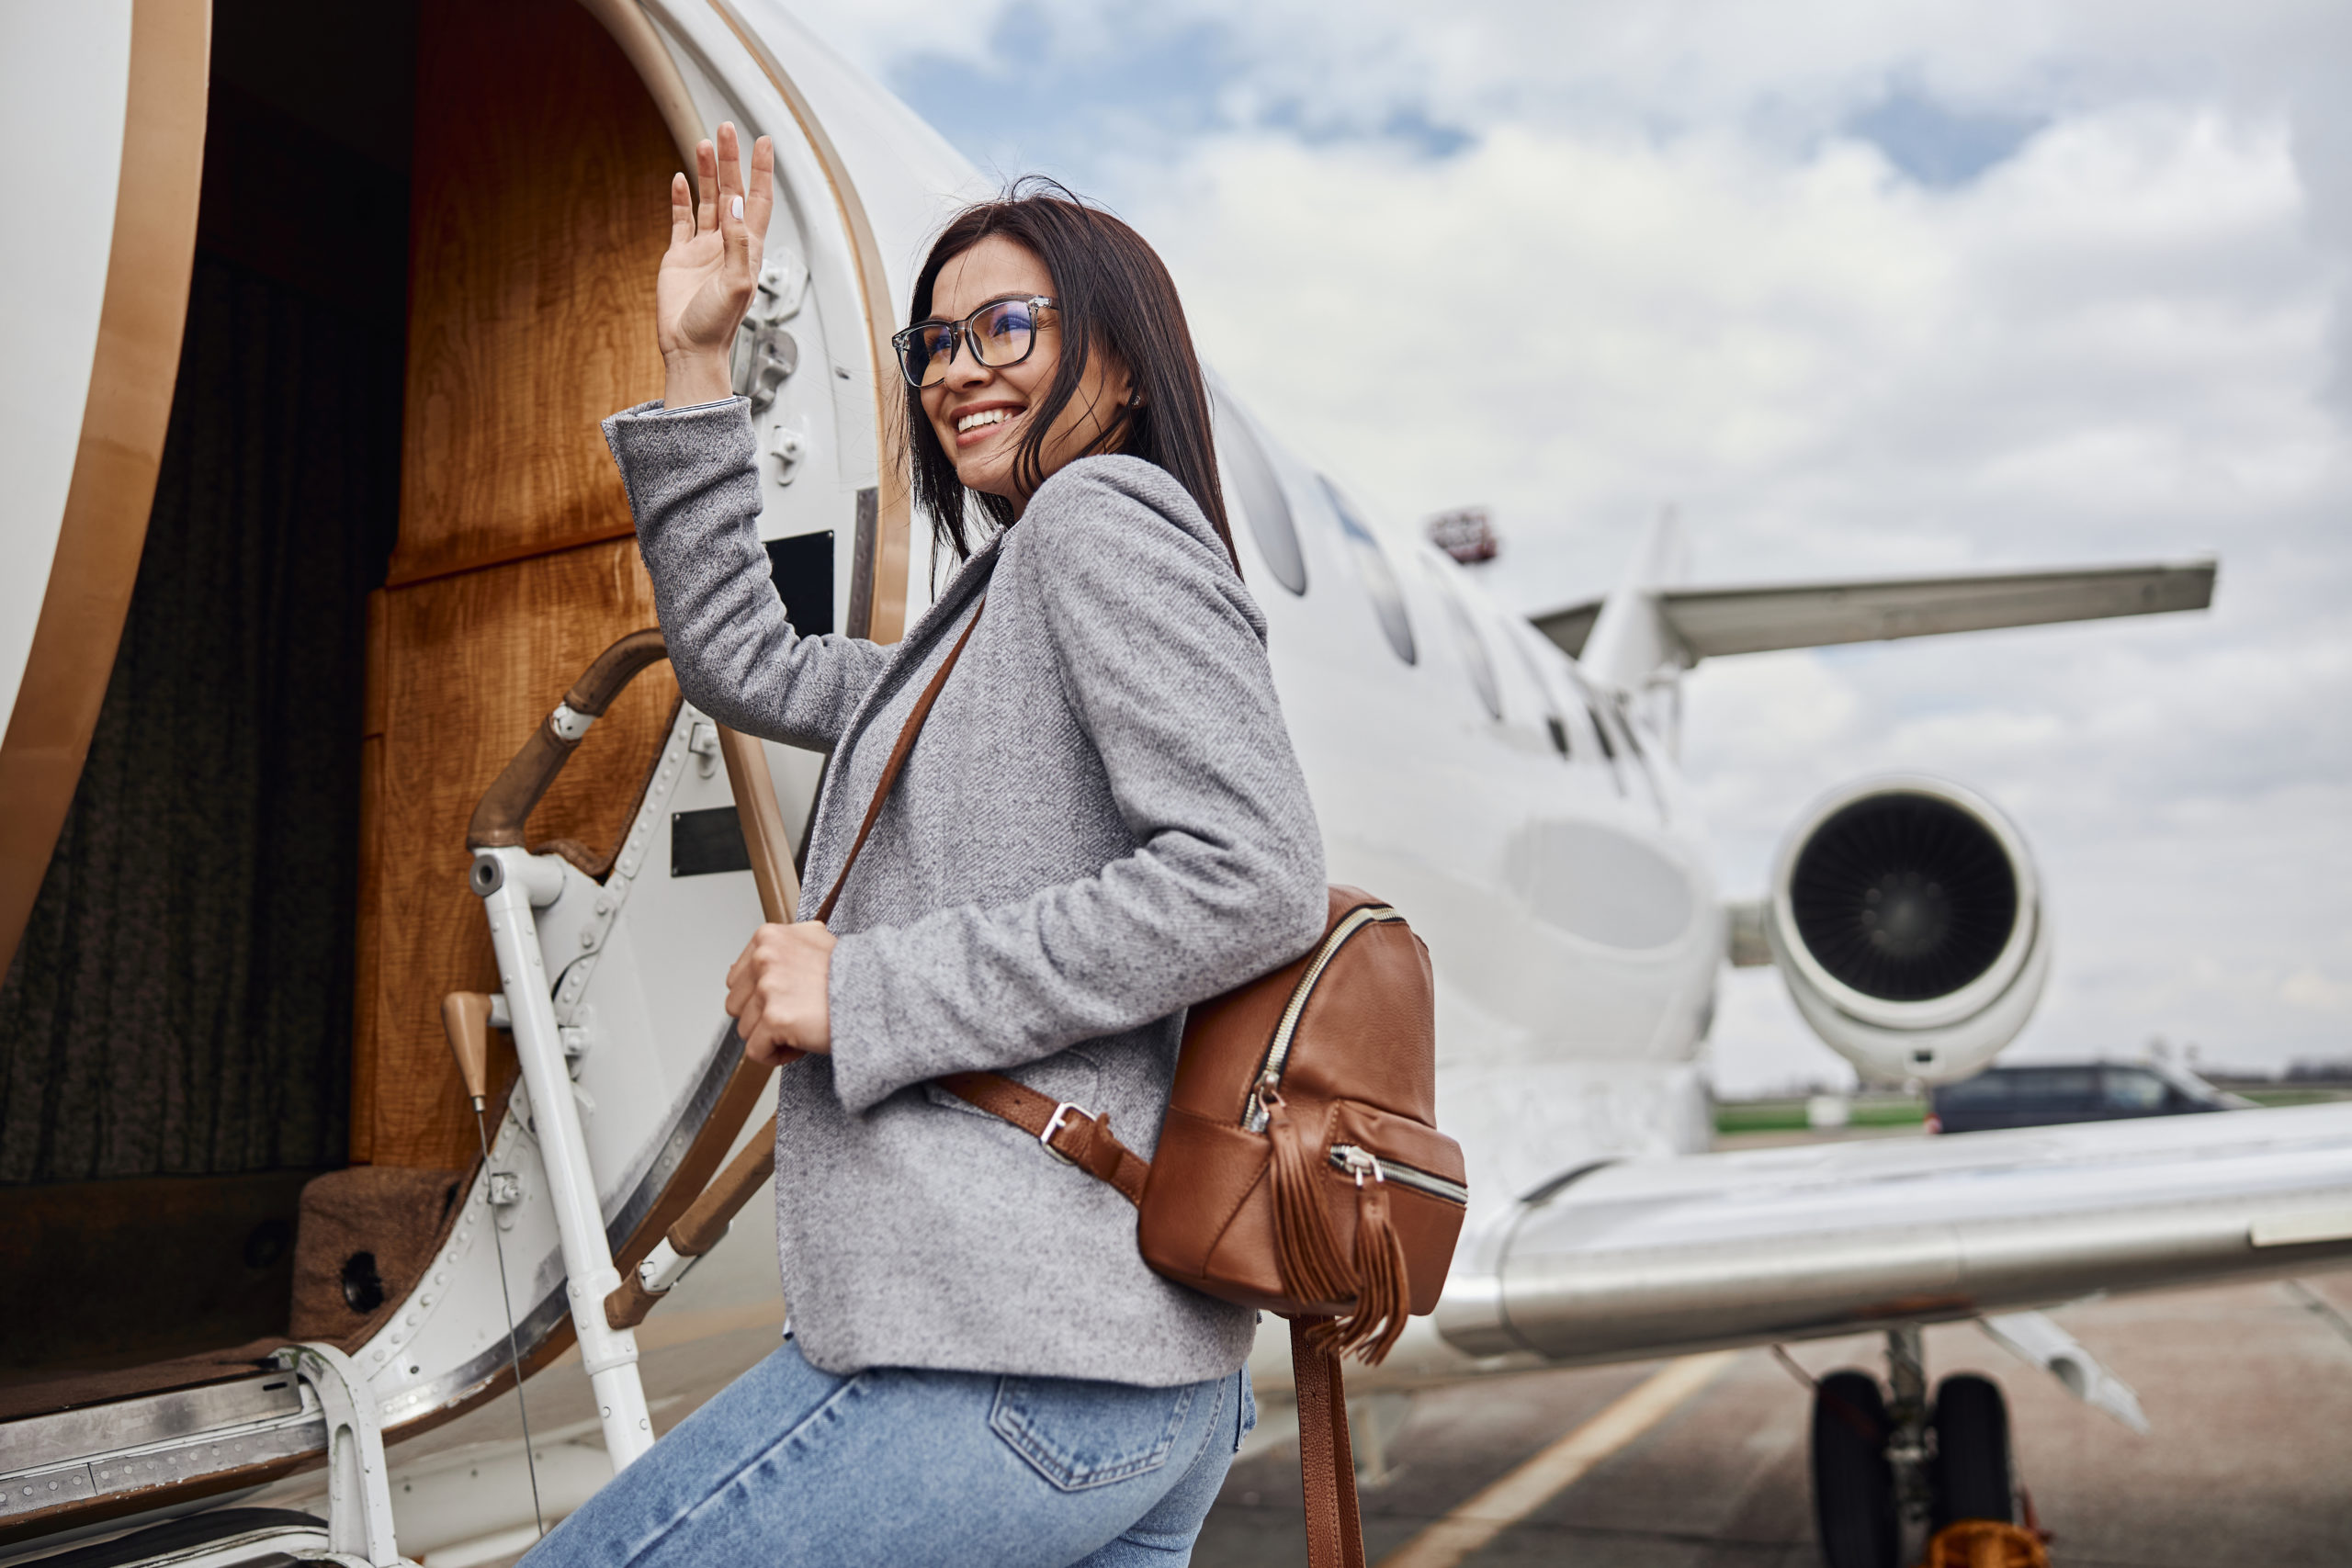 5 Tips For First-Time Private Jet Charter Passengers